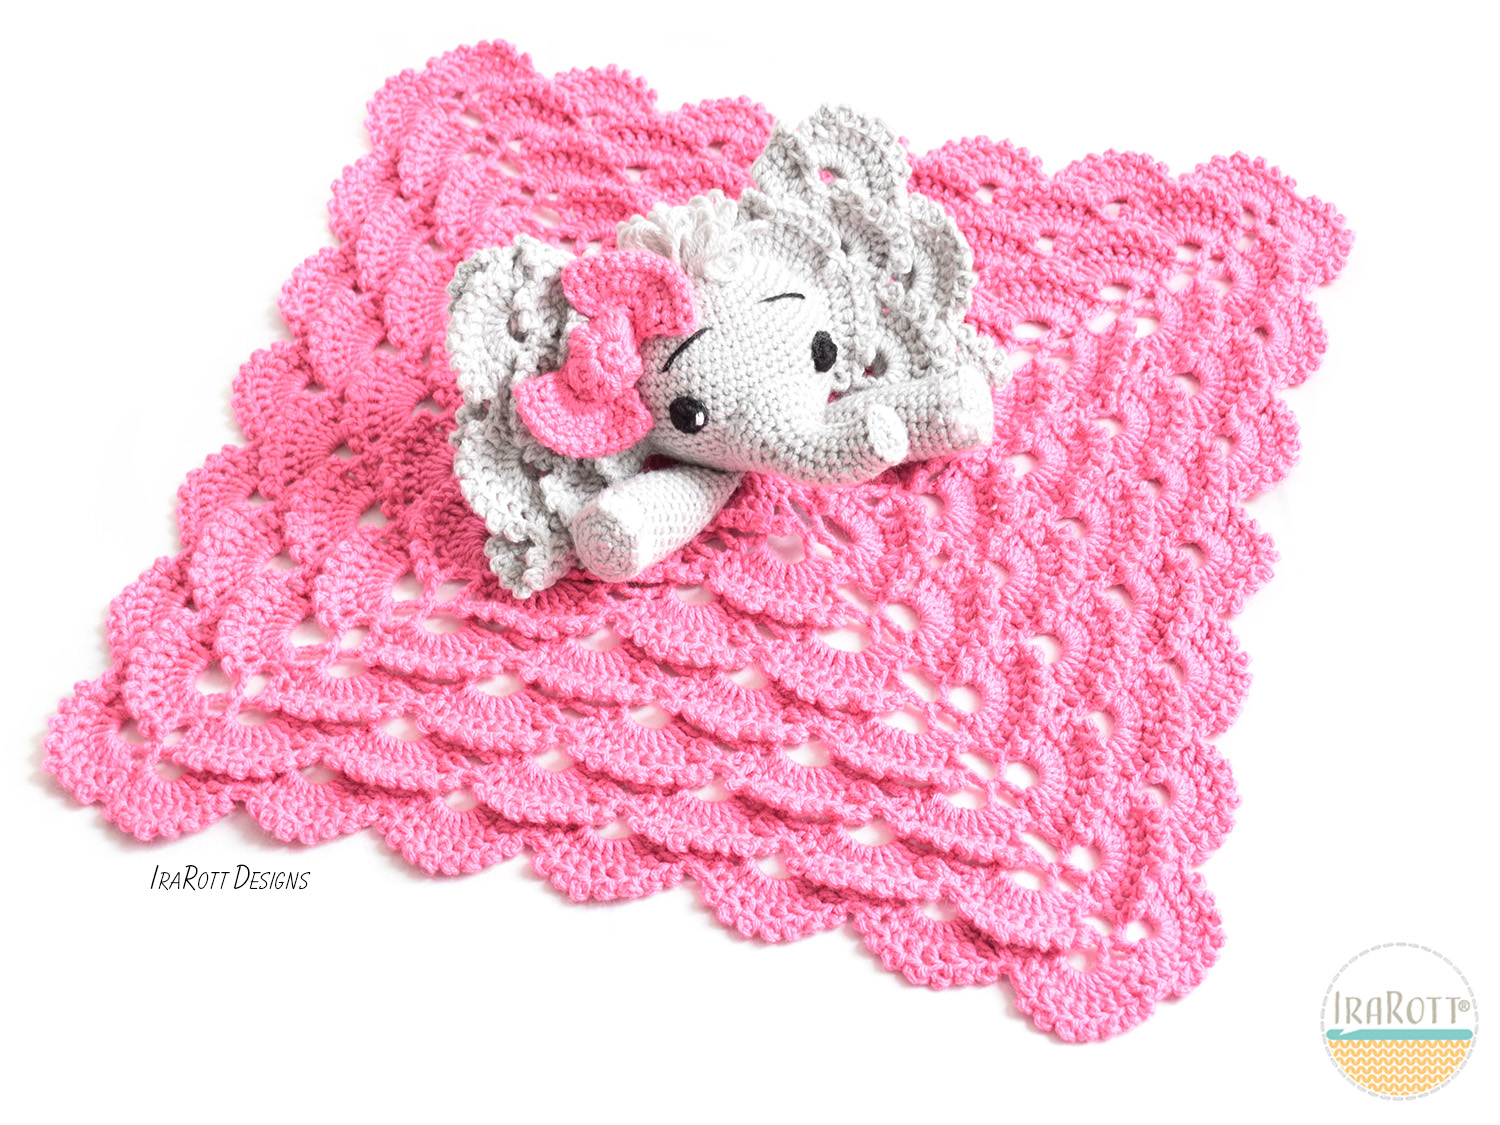 Amigurumi Elephant Pattern : Josefina and jeffery elephant security blanket pdf crochet pattern